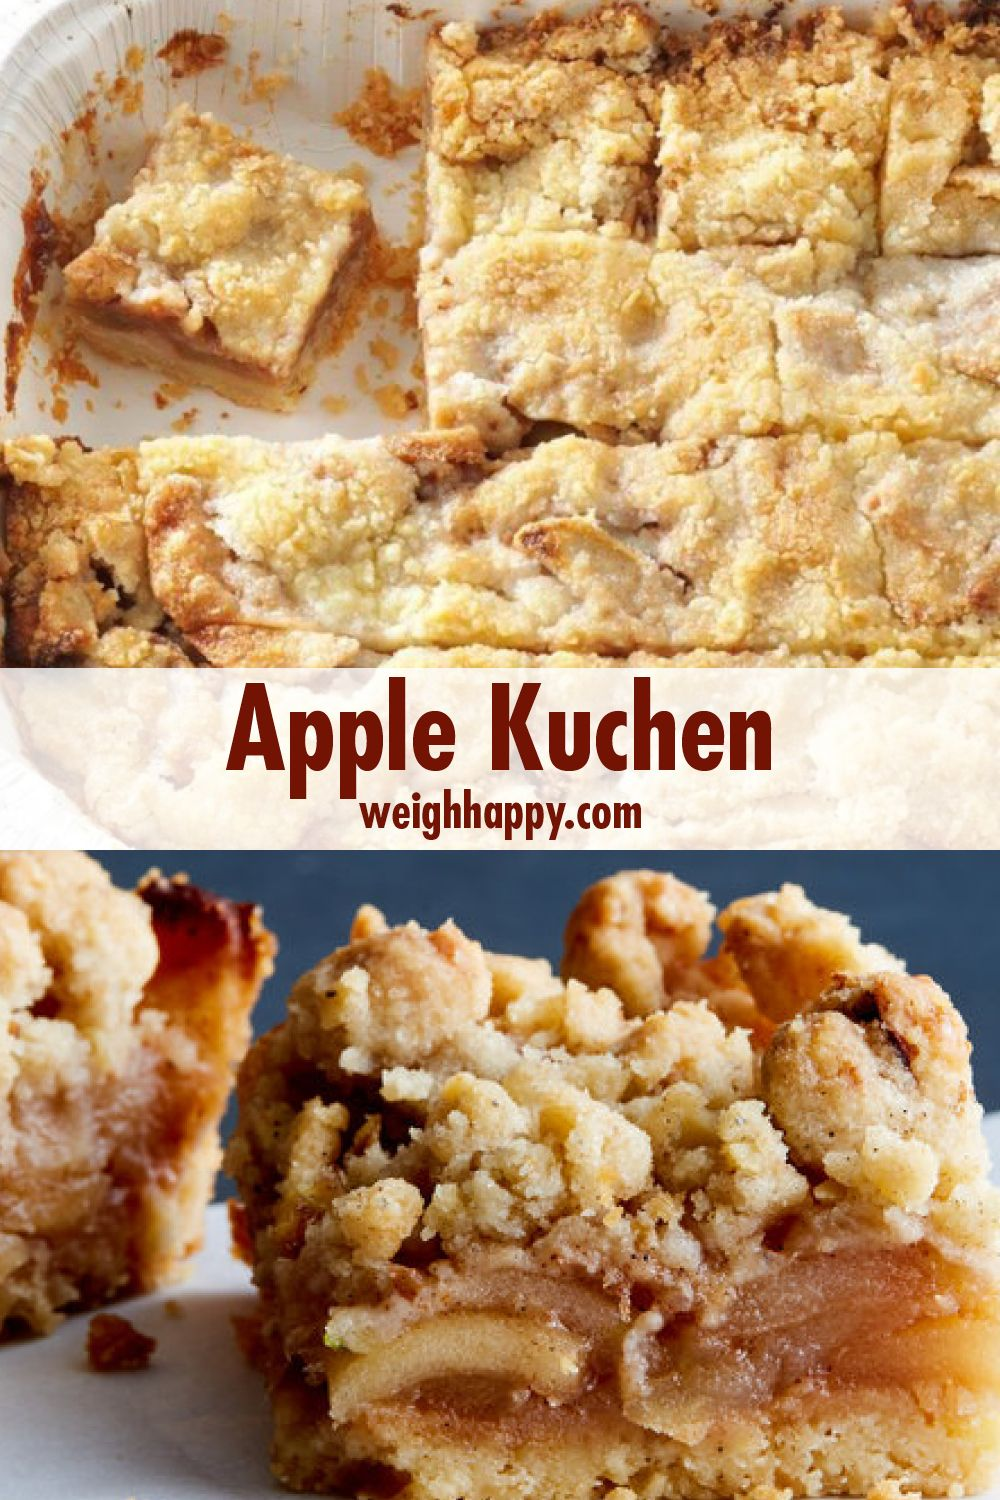 Fresh Apple Kuchen A German Favorite You Will Love To Better Health Recipe In 2020 Apple Recipes Kuchen Recipe Apple Dessert Recipes